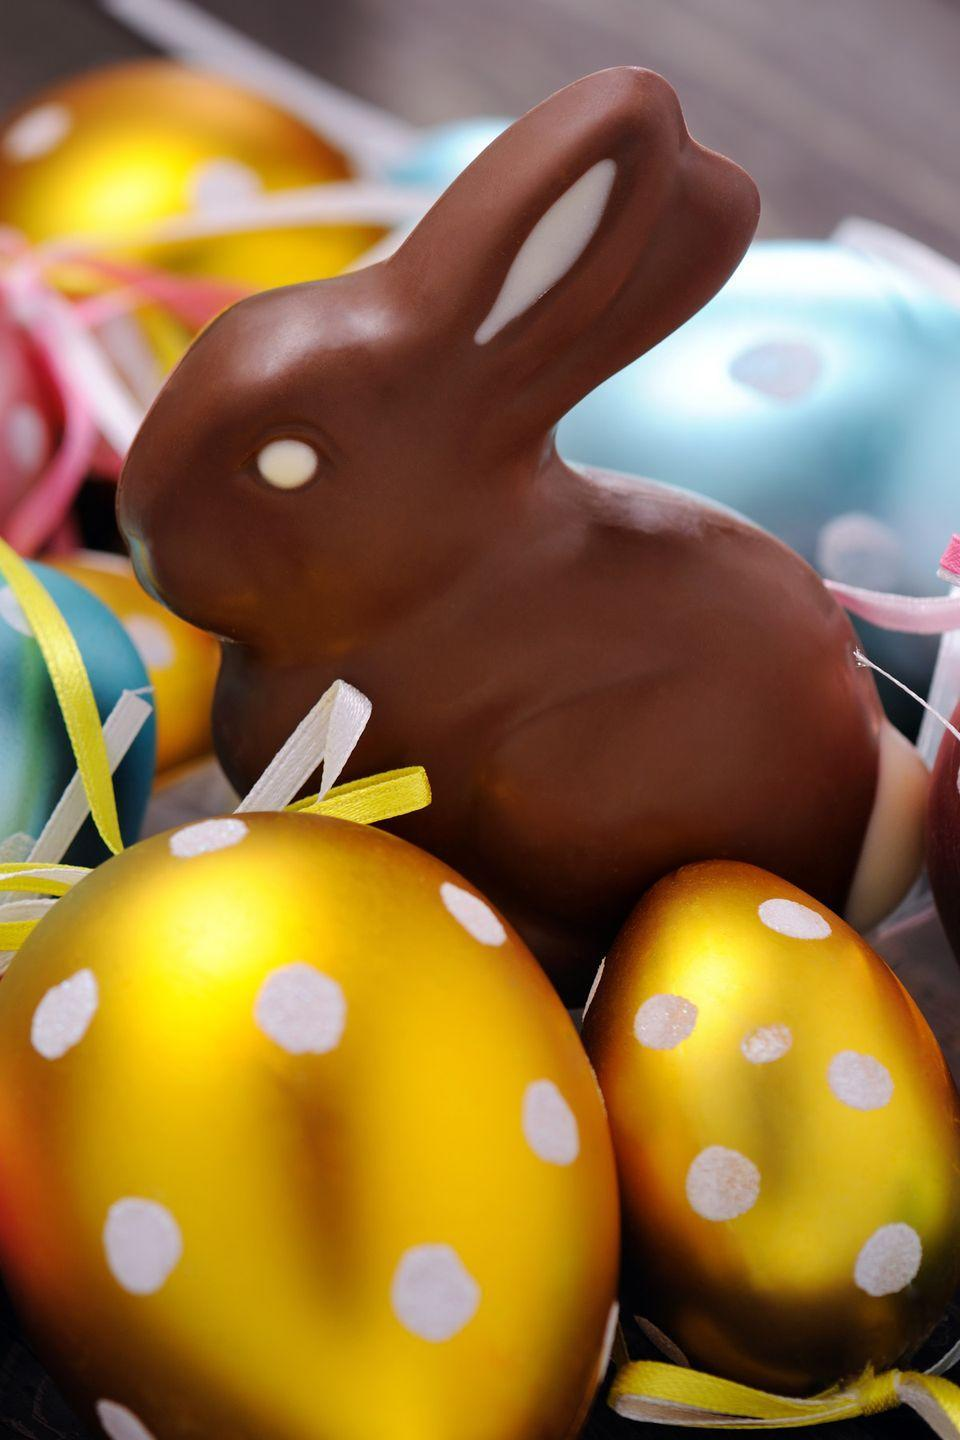 "<p>Considering <a href=""https://nrf.com/media-center/press-releases/easter-spending-expected-be-second-highest-nrf-survey-history"" rel=""nofollow noopener"" target=""_blank"" data-ylk=""slk:$2.6 billion is spent on candy"" class=""link rapid-noclick-resp"">$2.6 billion is spent on candy</a> alone during this religious celebration, it makes sense. Oh, and that's only in <a href=""https://www.thestreet.com/slideshow/14087656/1/easter-spending-by-the-numbers-100-million-chocolate-bunnies-and-16-billion-jelly-beans.html"" rel=""nofollow noopener"" target=""_blank"" data-ylk=""slk:the United States"" class=""link rapid-noclick-resp"">the United States</a>.</p><p><strong>RELATED:</strong> <a href=""https://www.goodhousekeeping.com/holidays/easter-ideas/a27152121/how-is-easter-determined/"" rel=""nofollow noopener"" target=""_blank"" data-ylk=""slk:How the Date of Easter Is Determined"" class=""link rapid-noclick-resp"">How the Date of Easter Is Determined</a></p>"